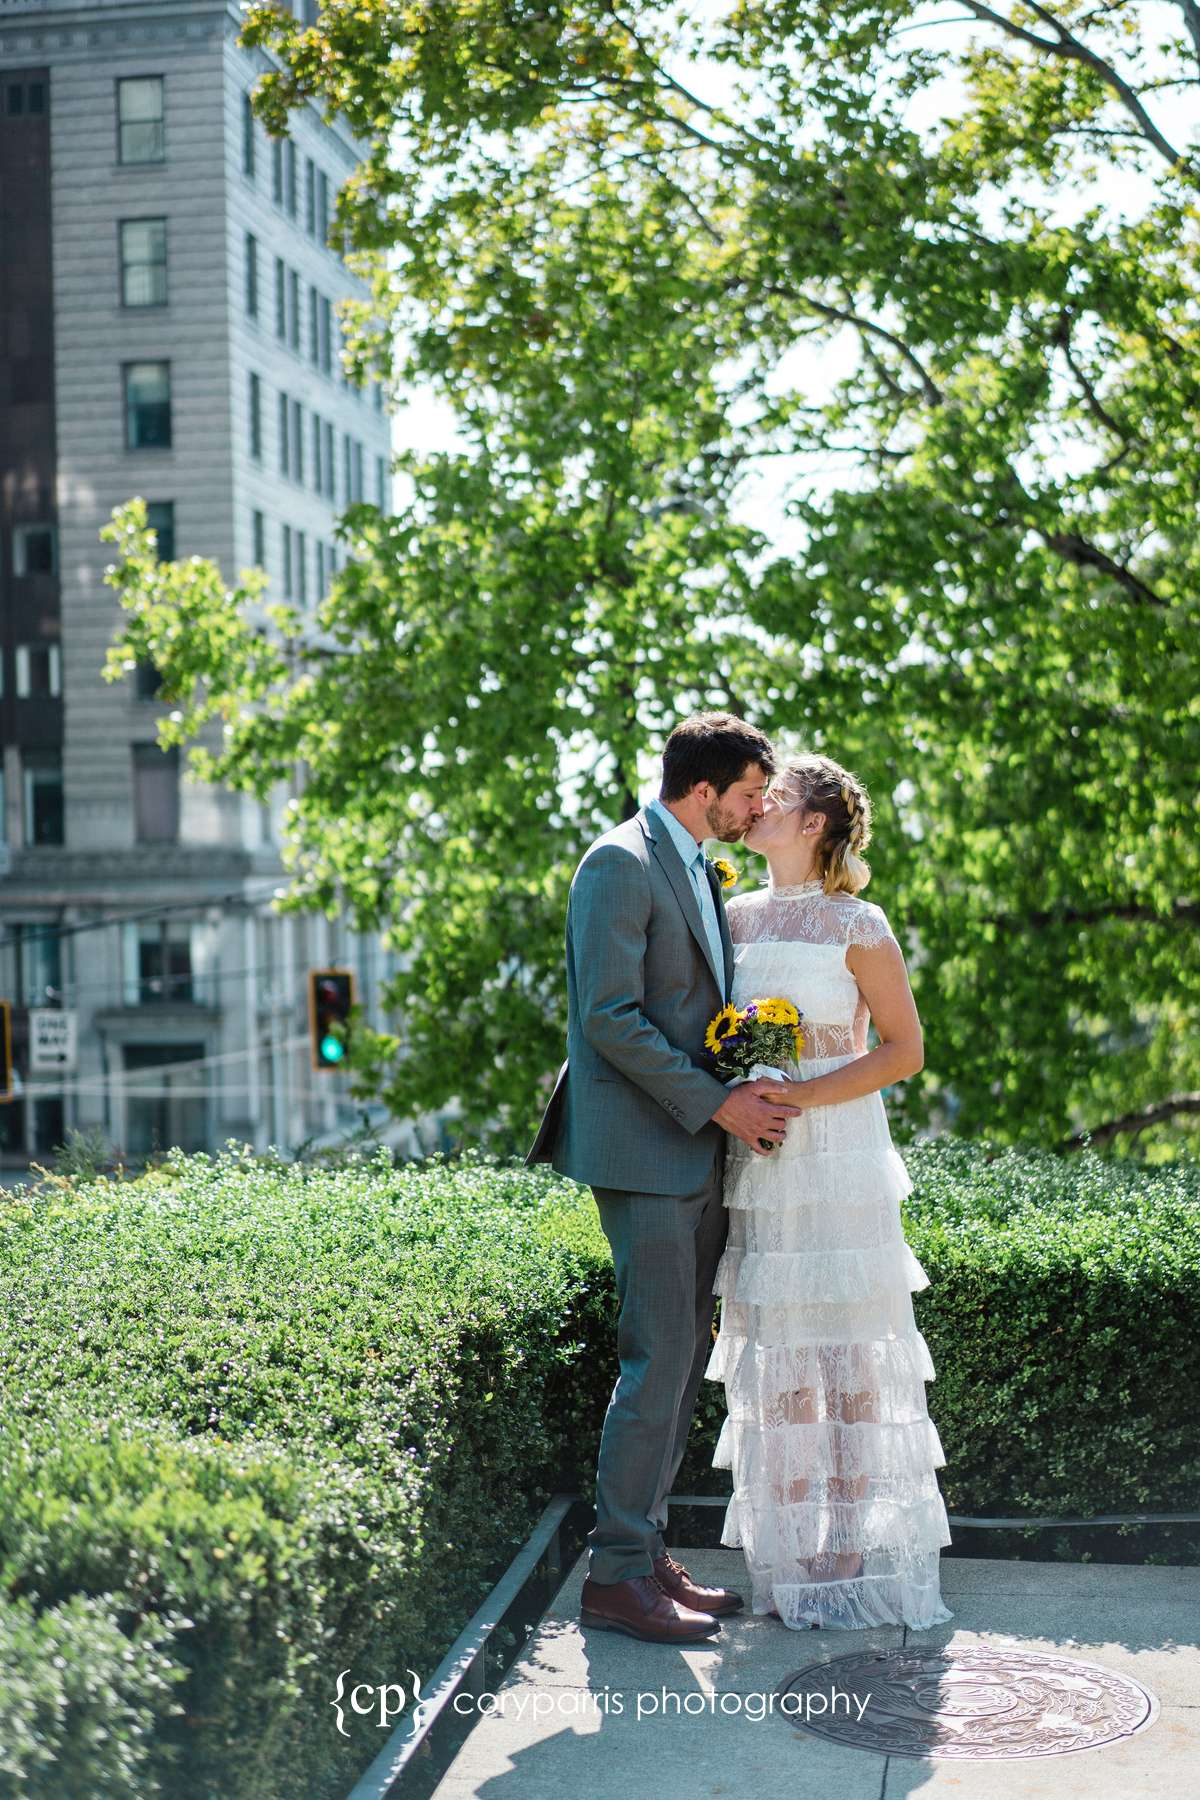 008-Seattle-Elopement-Courthouse.jpg